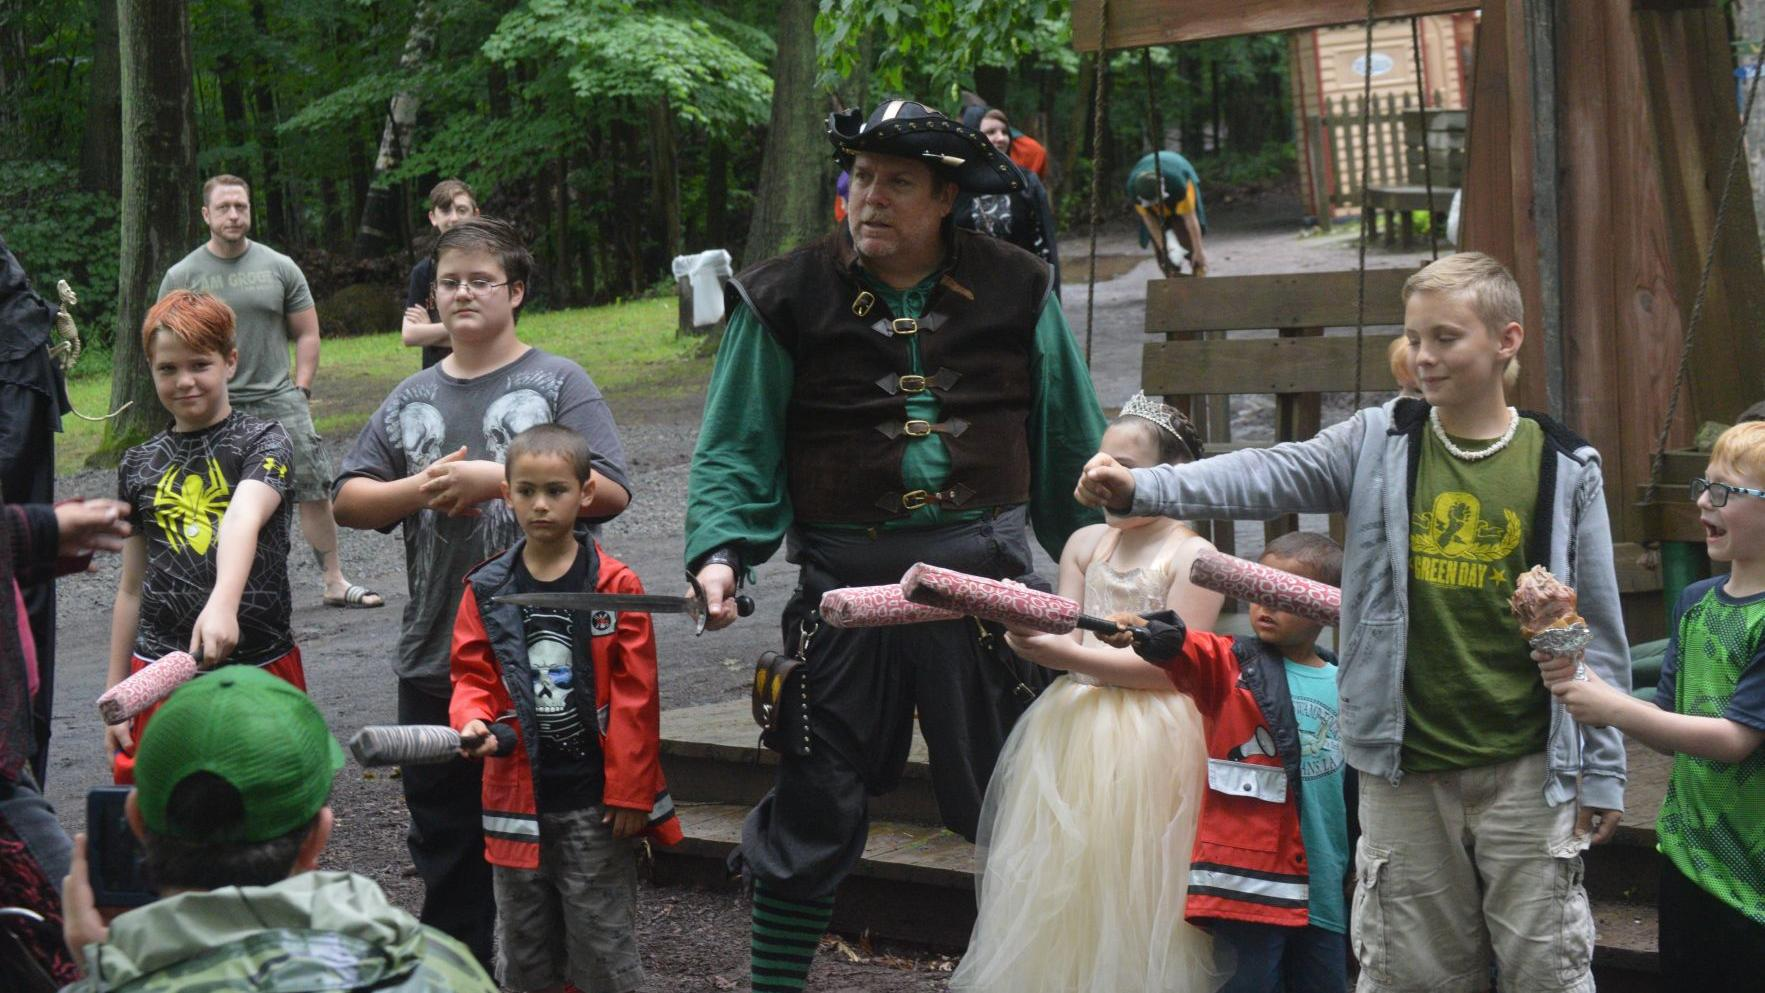 Actors, activities abound at the Sterling Renaissance Festival